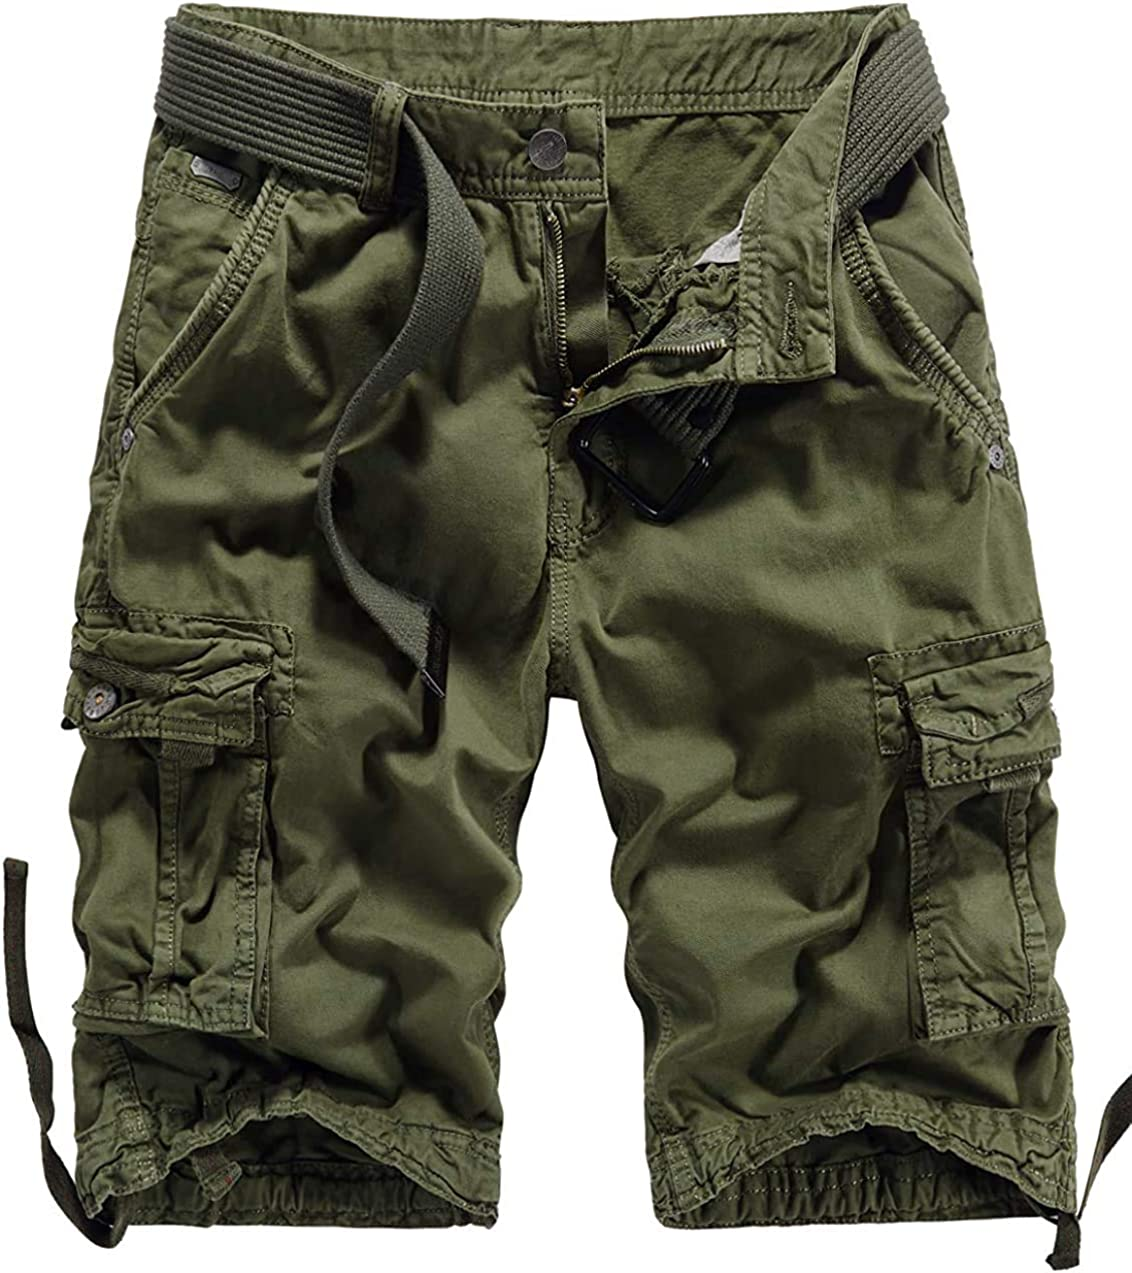 Alilyol 2021 New Men's Camo Cargo Shorts Casual Multi-Pockets Outdoor Camouflage Cotton Shorts for Men